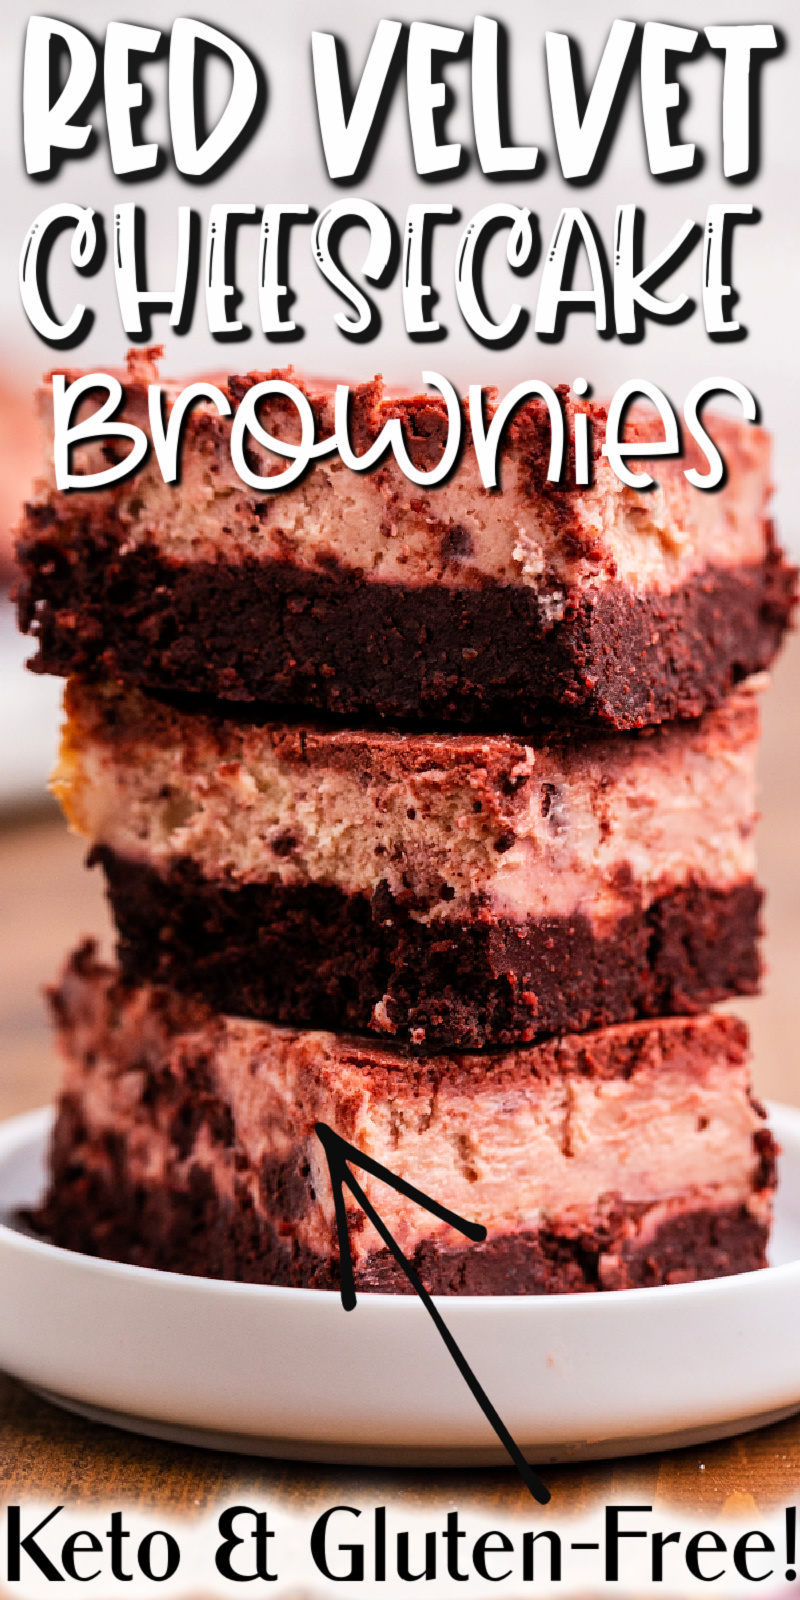 Keto Red Velvet Cheesecake Brownies - These keto red velvet cheesecake brownies are the best keto brownies out there! Fudgy, with a cheesecake center, even non-keto people will love them! #keto #lowcarb #glutenfree #sugarfree #grainfree #chocolate #redvelvet #cheesecake #brownies #dessert #recipe